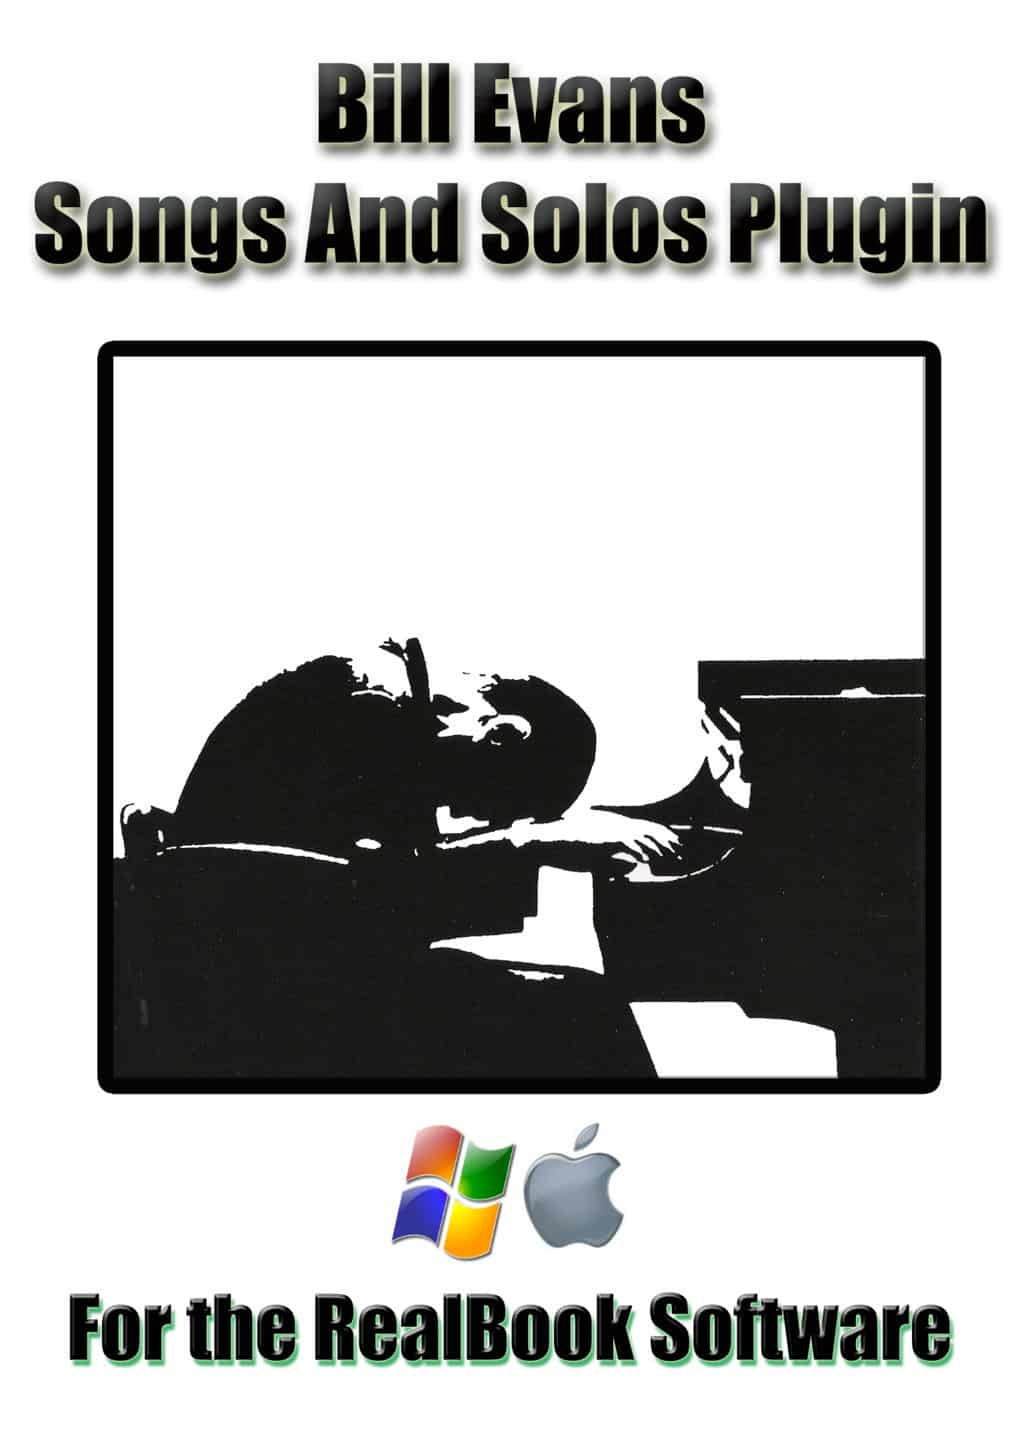 Bill Evans Songs and Solos Software Plugin by RealBookSoftware.com